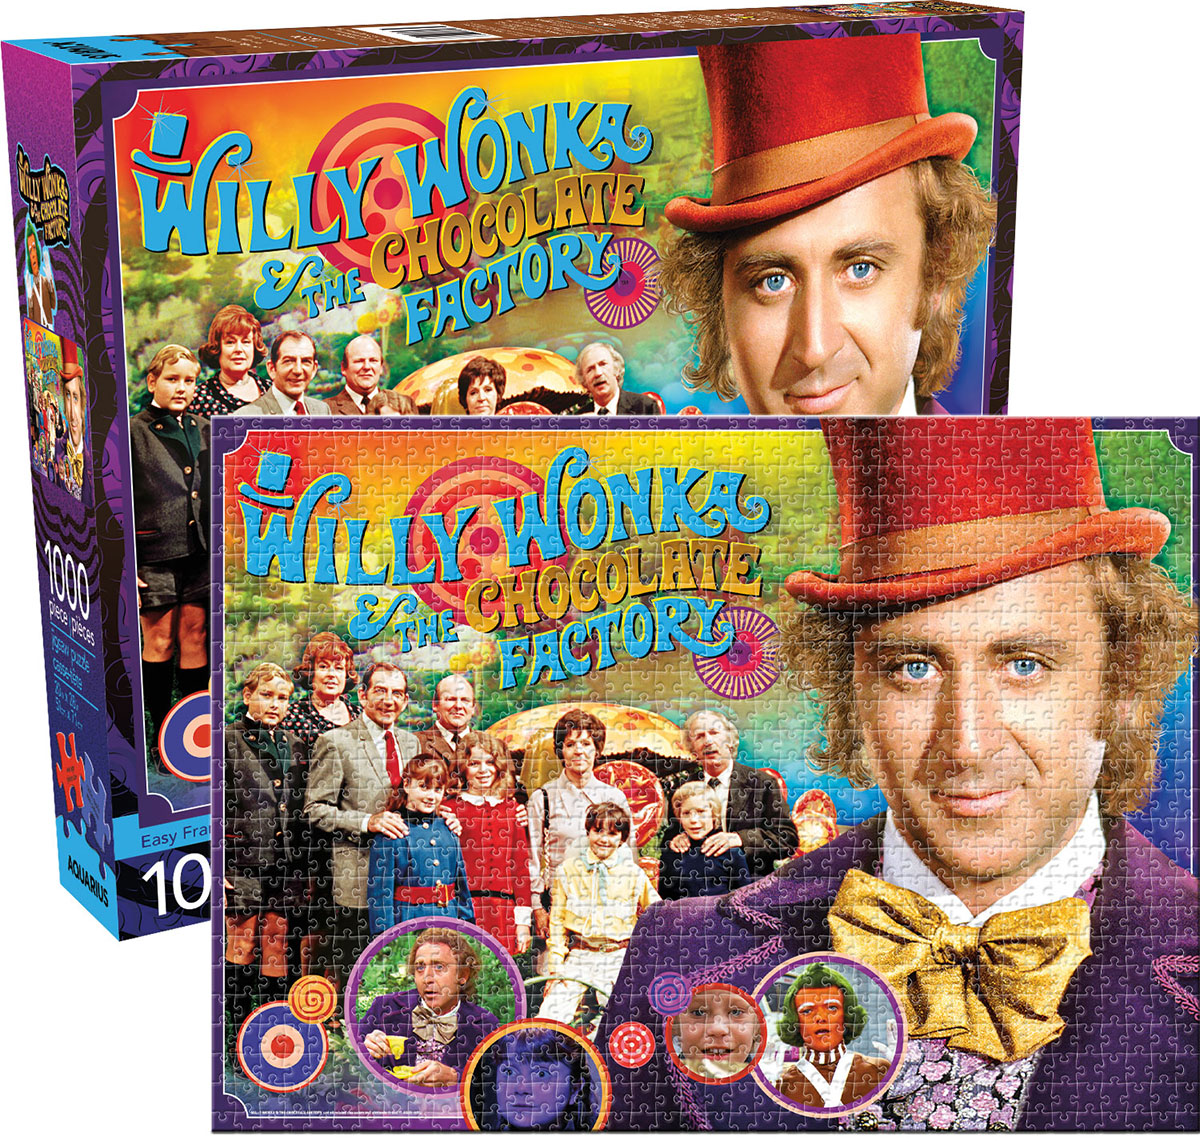 Willy Wonka & the Chocolate Factory Movies / Books / TV Jigsaw Puzzle